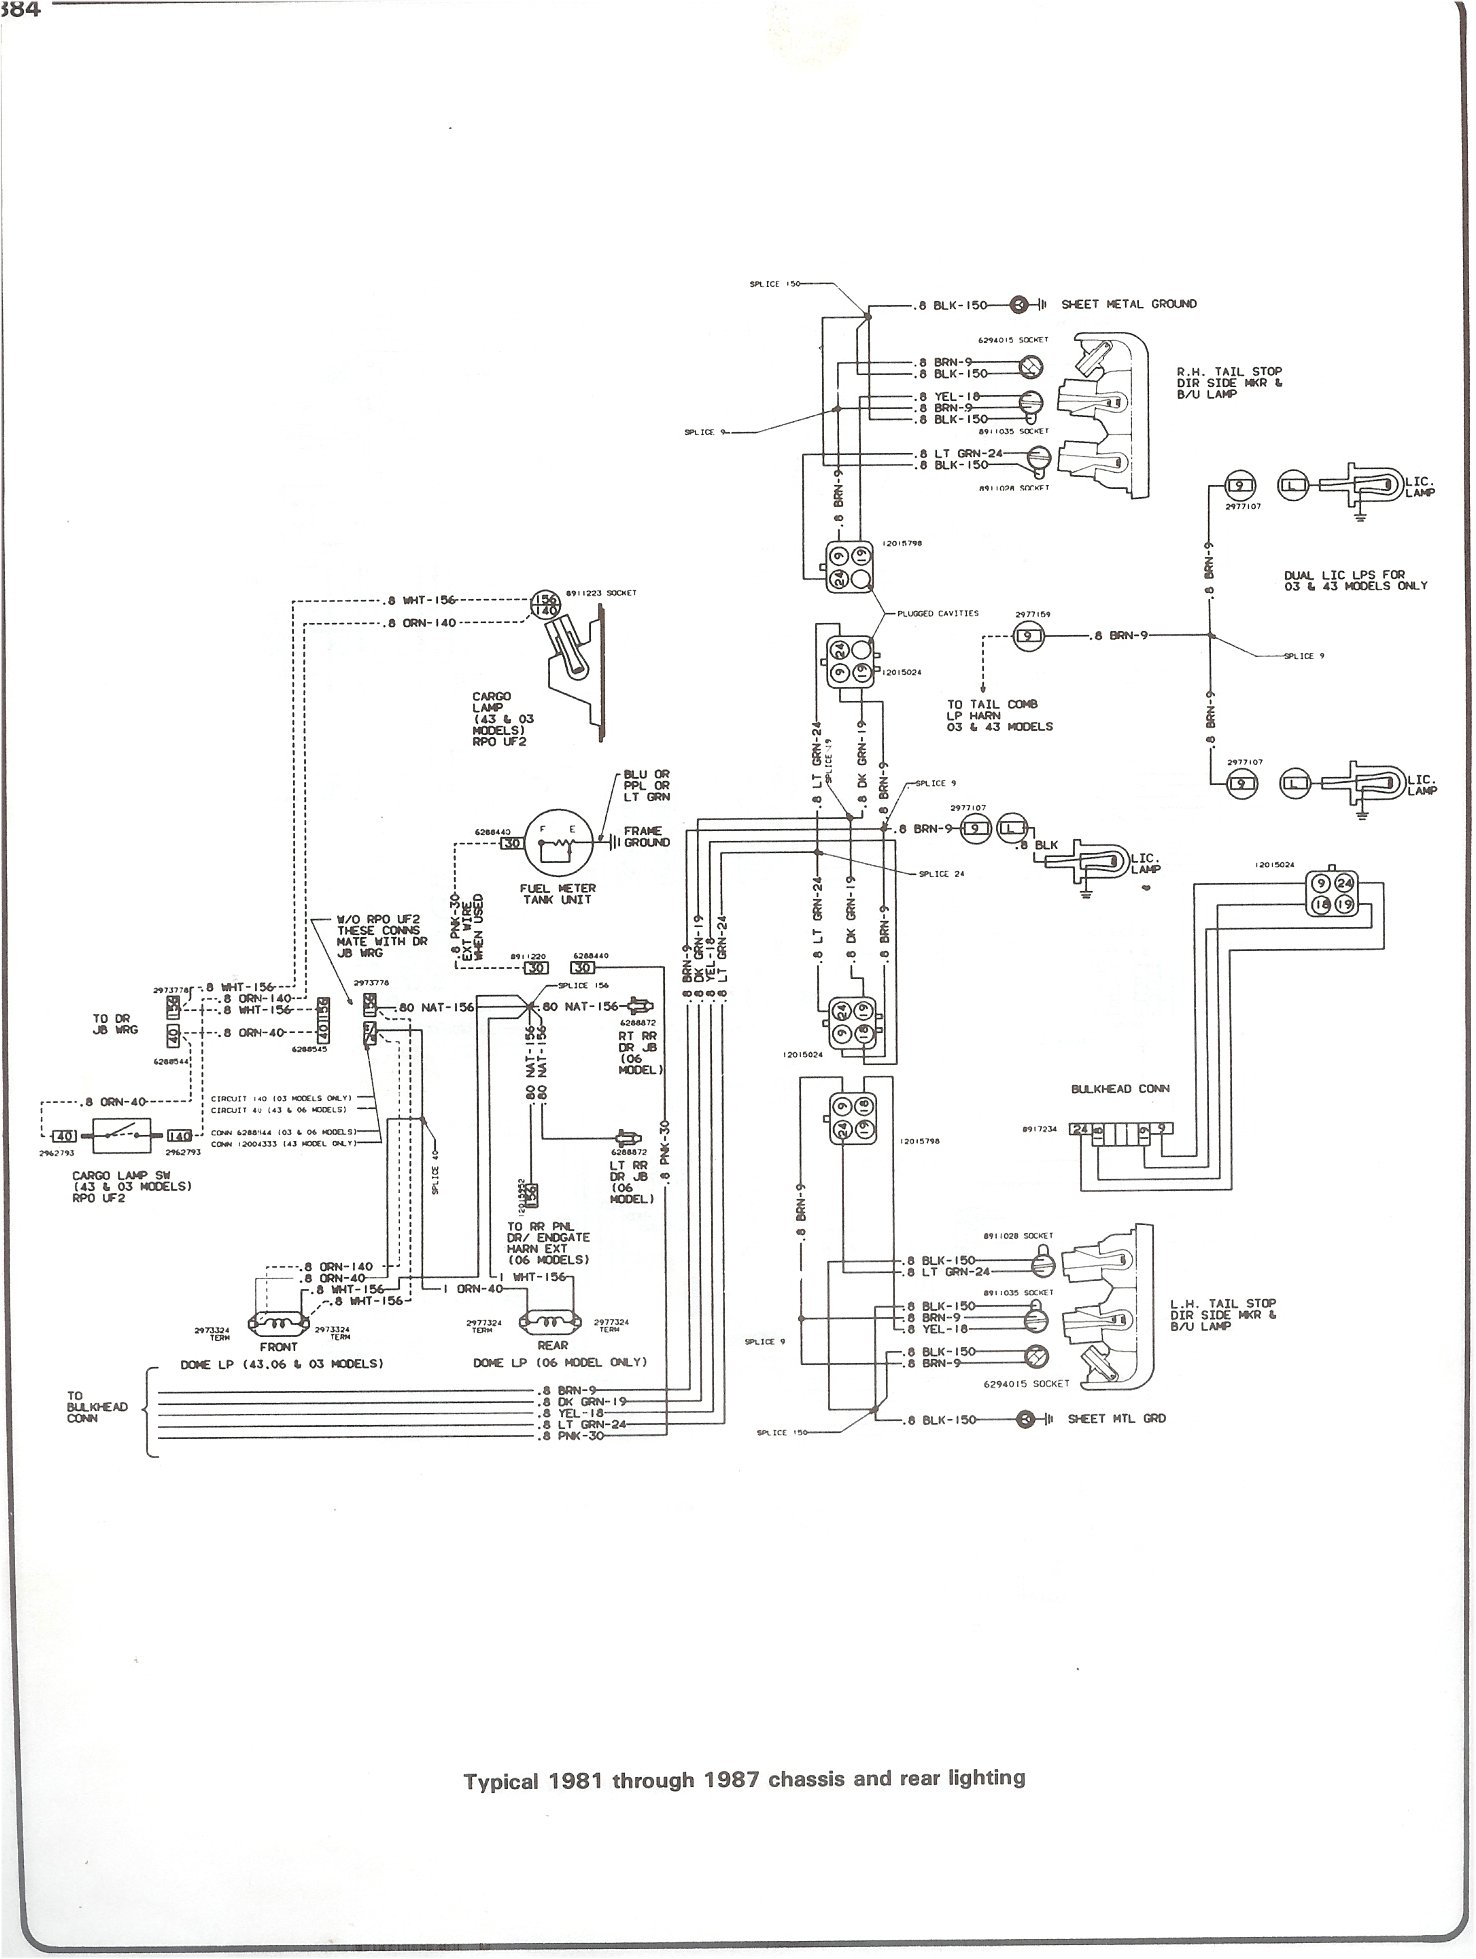 1981 c10 wiring diagram speedometer wiring library Fender Standard Stratocaster Wiring-Diagram 81 87 chassis and rear lighting